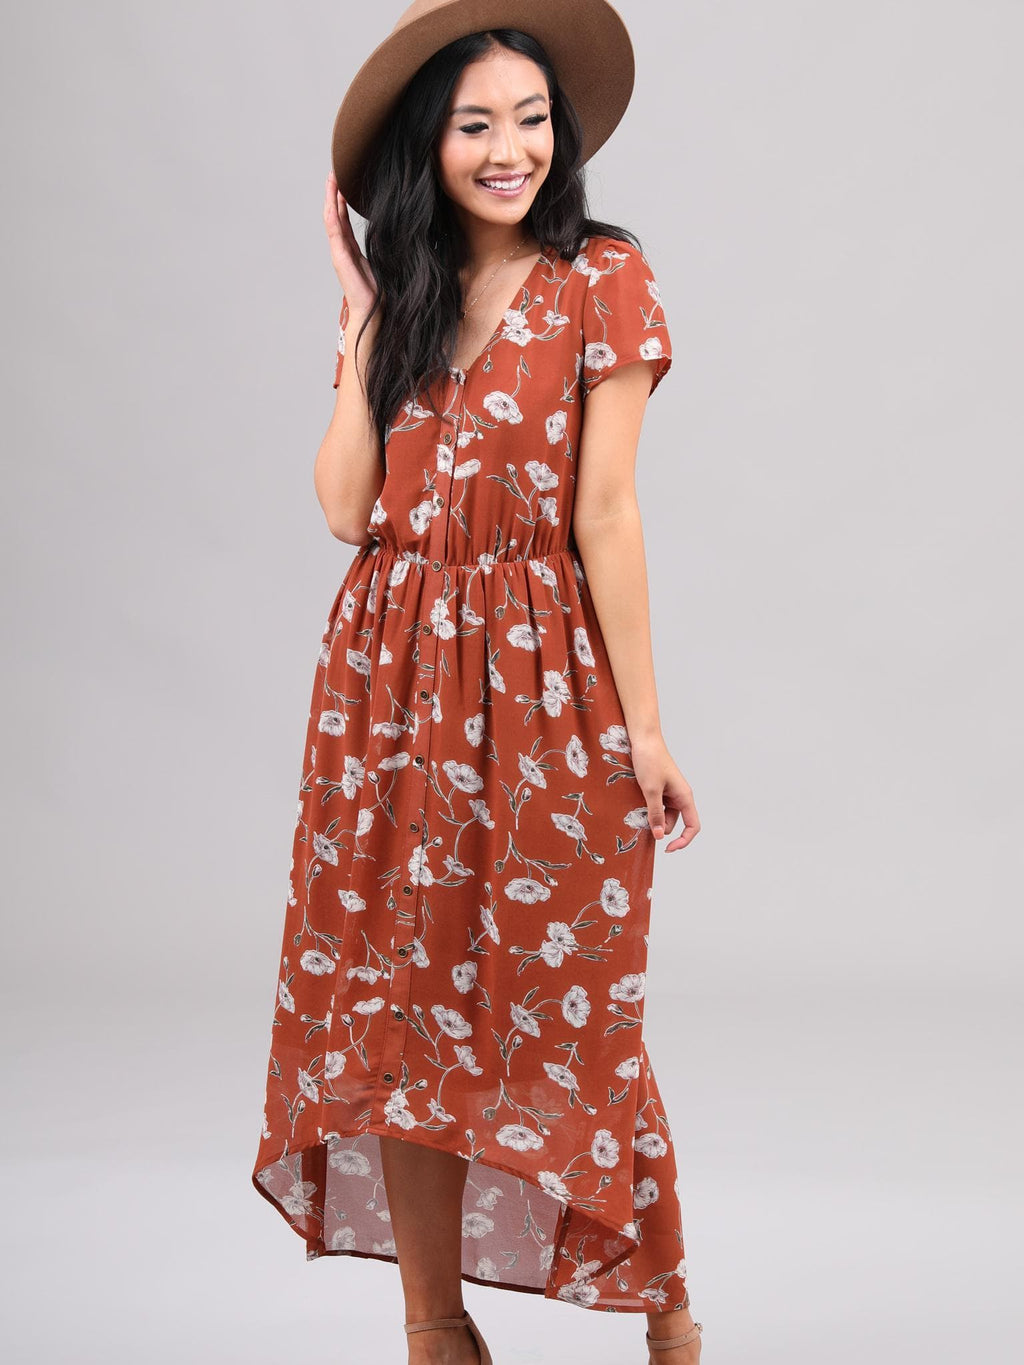 Rowan Cayenne Floral Dress